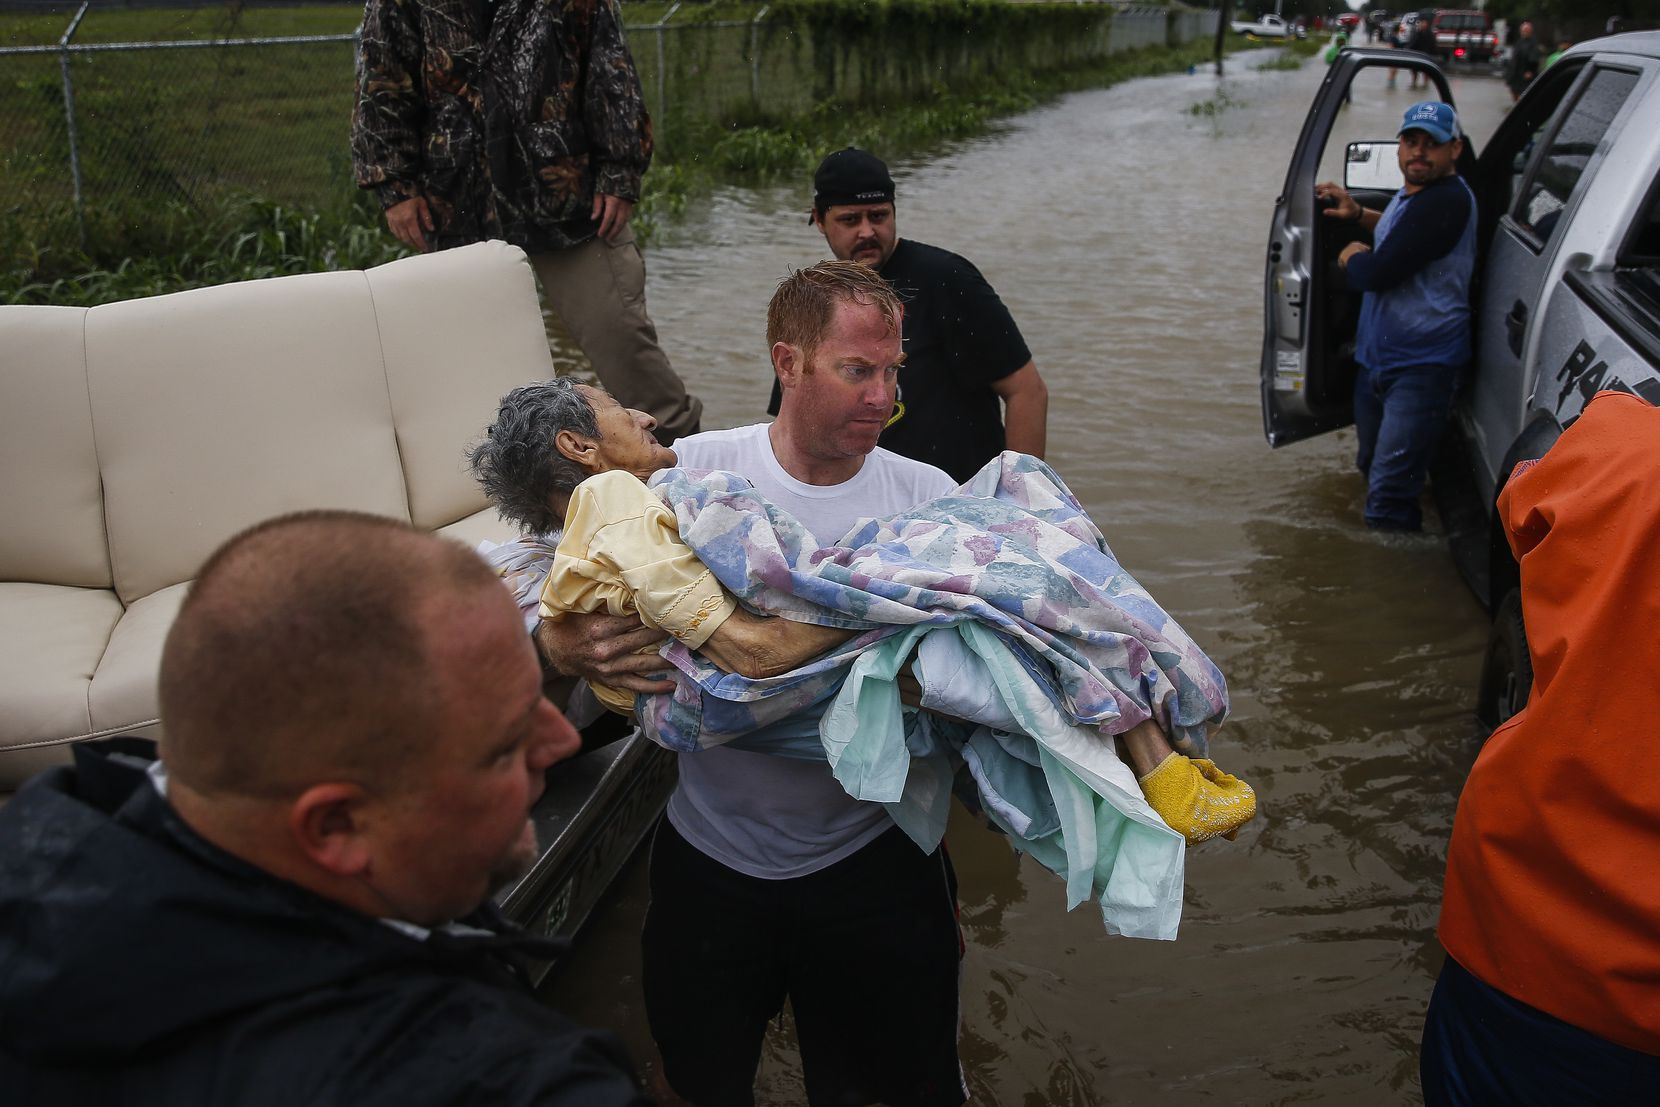 A rescuer moves Paulina Tamirano, 92, from a boat to a truck bed as people evacuate from the Savannah Estates neighborhood as Addicks Reservoir nears capacity Tuesday, Aug. 29, 2017 in Houston. ( Michael Ciaglo/Houston Chronicle via AP)